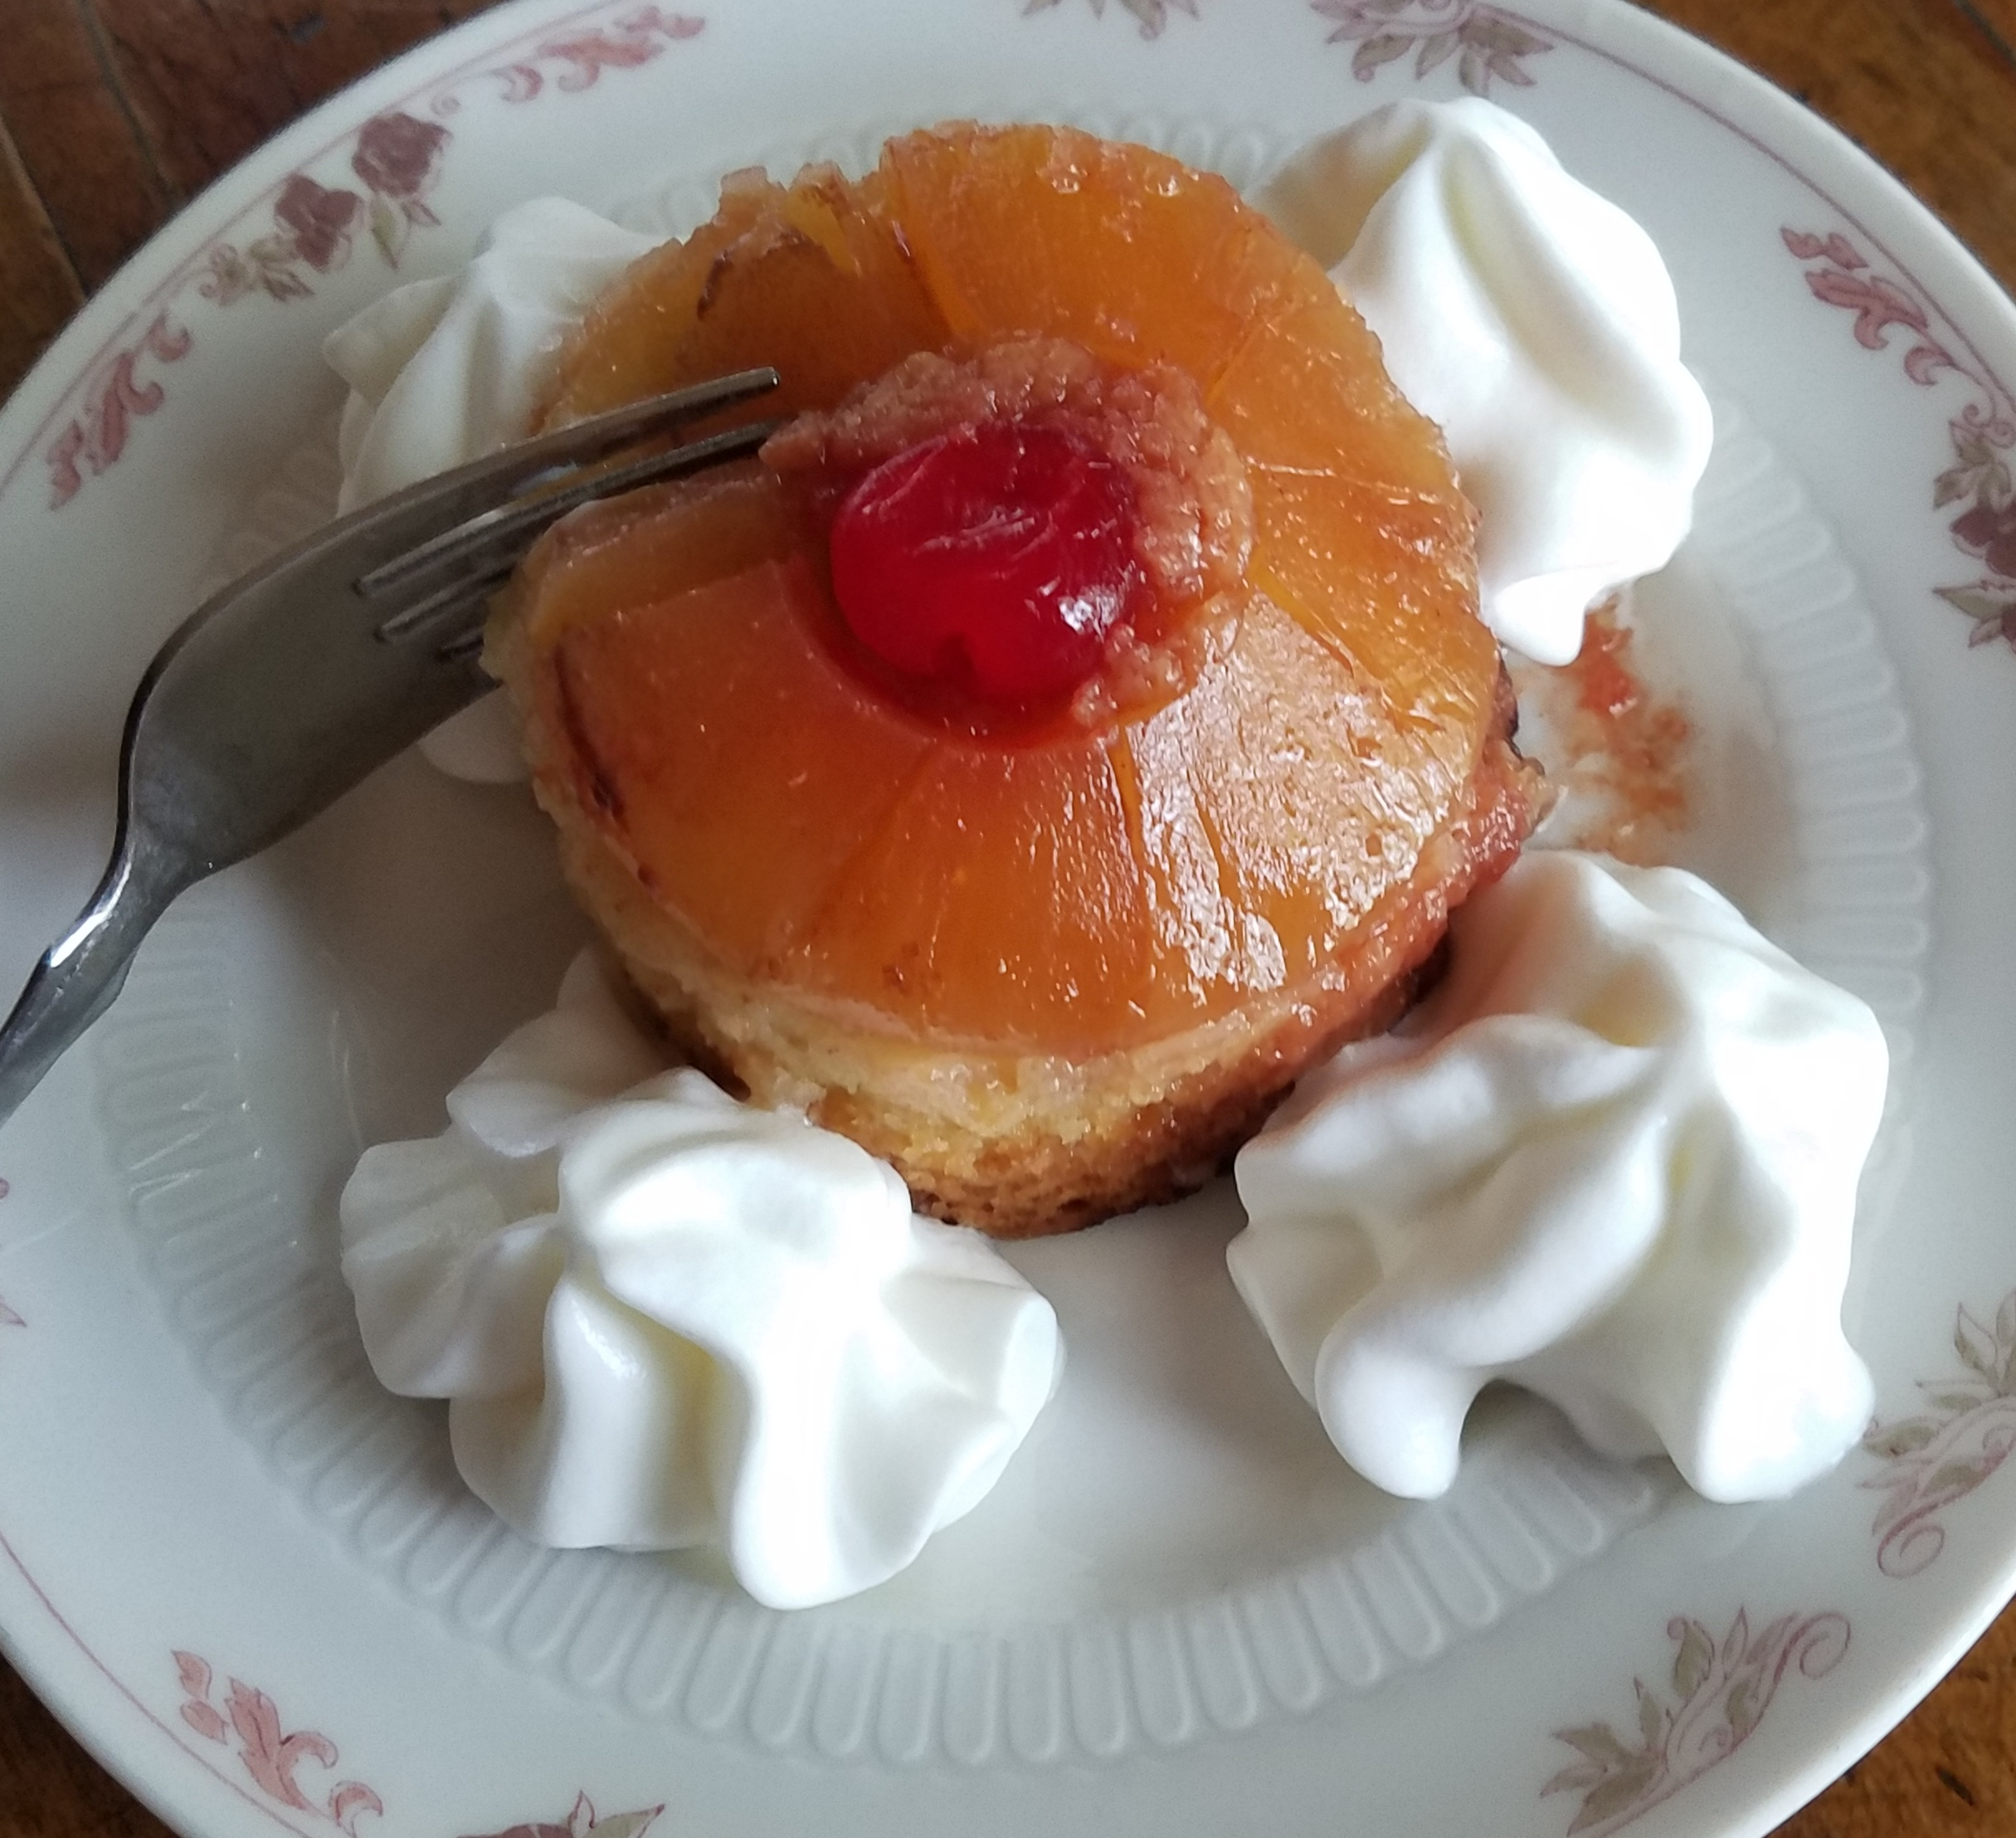 Pineapple upside down with fork in itl.jpg